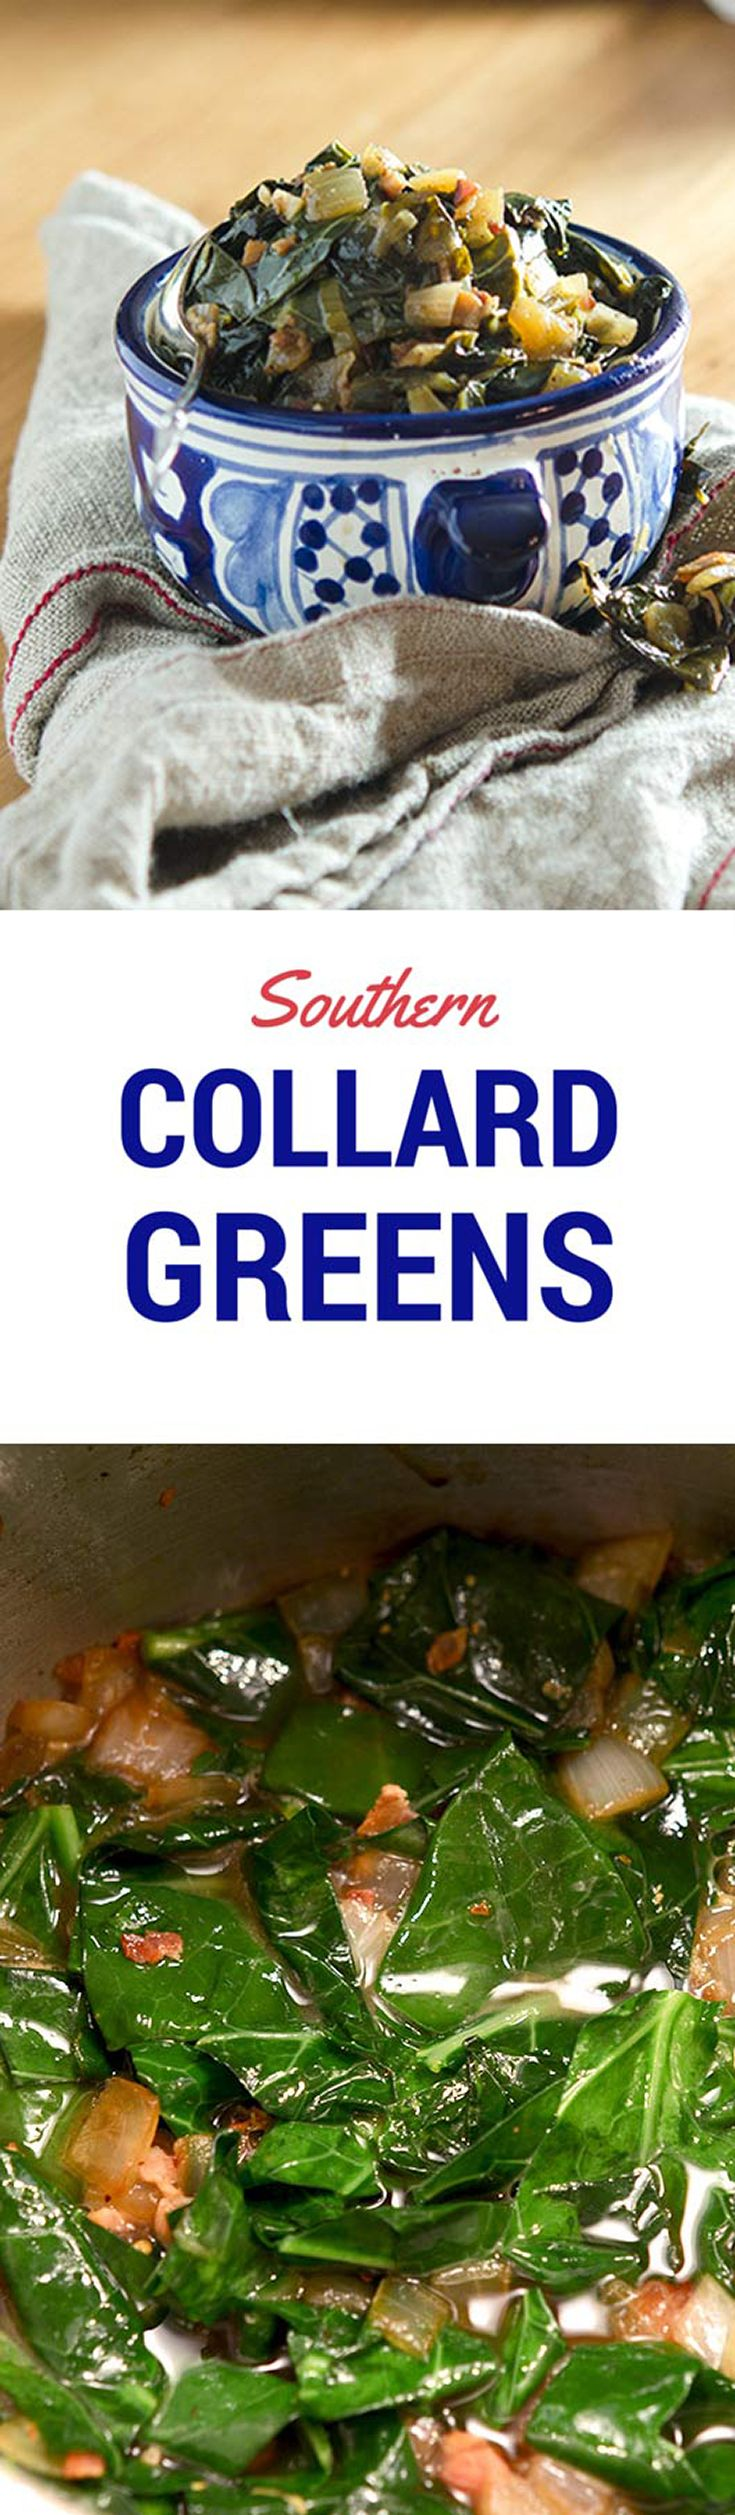 Ooo wee y'all!  There's nothing quite like some good southern collard greens.  When they are cooked just right… Good lord!  A perfect blend of earthy greens, pungent garlic and fantastic bacon infusion.